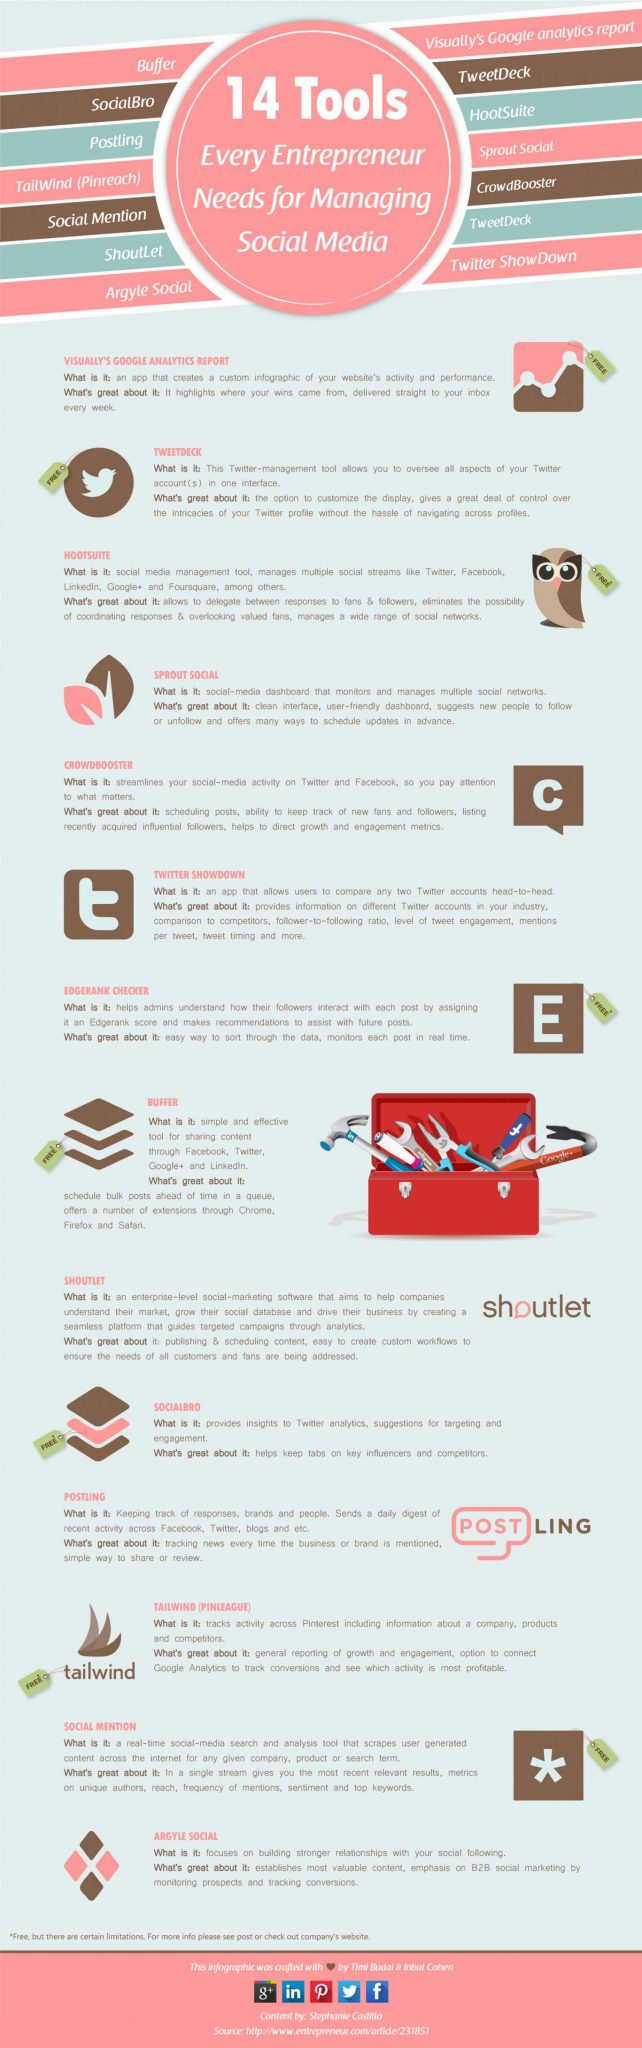 Infographic-14-Tools-Every-Entrepreneur-Needs-for-Managing-Social-Media